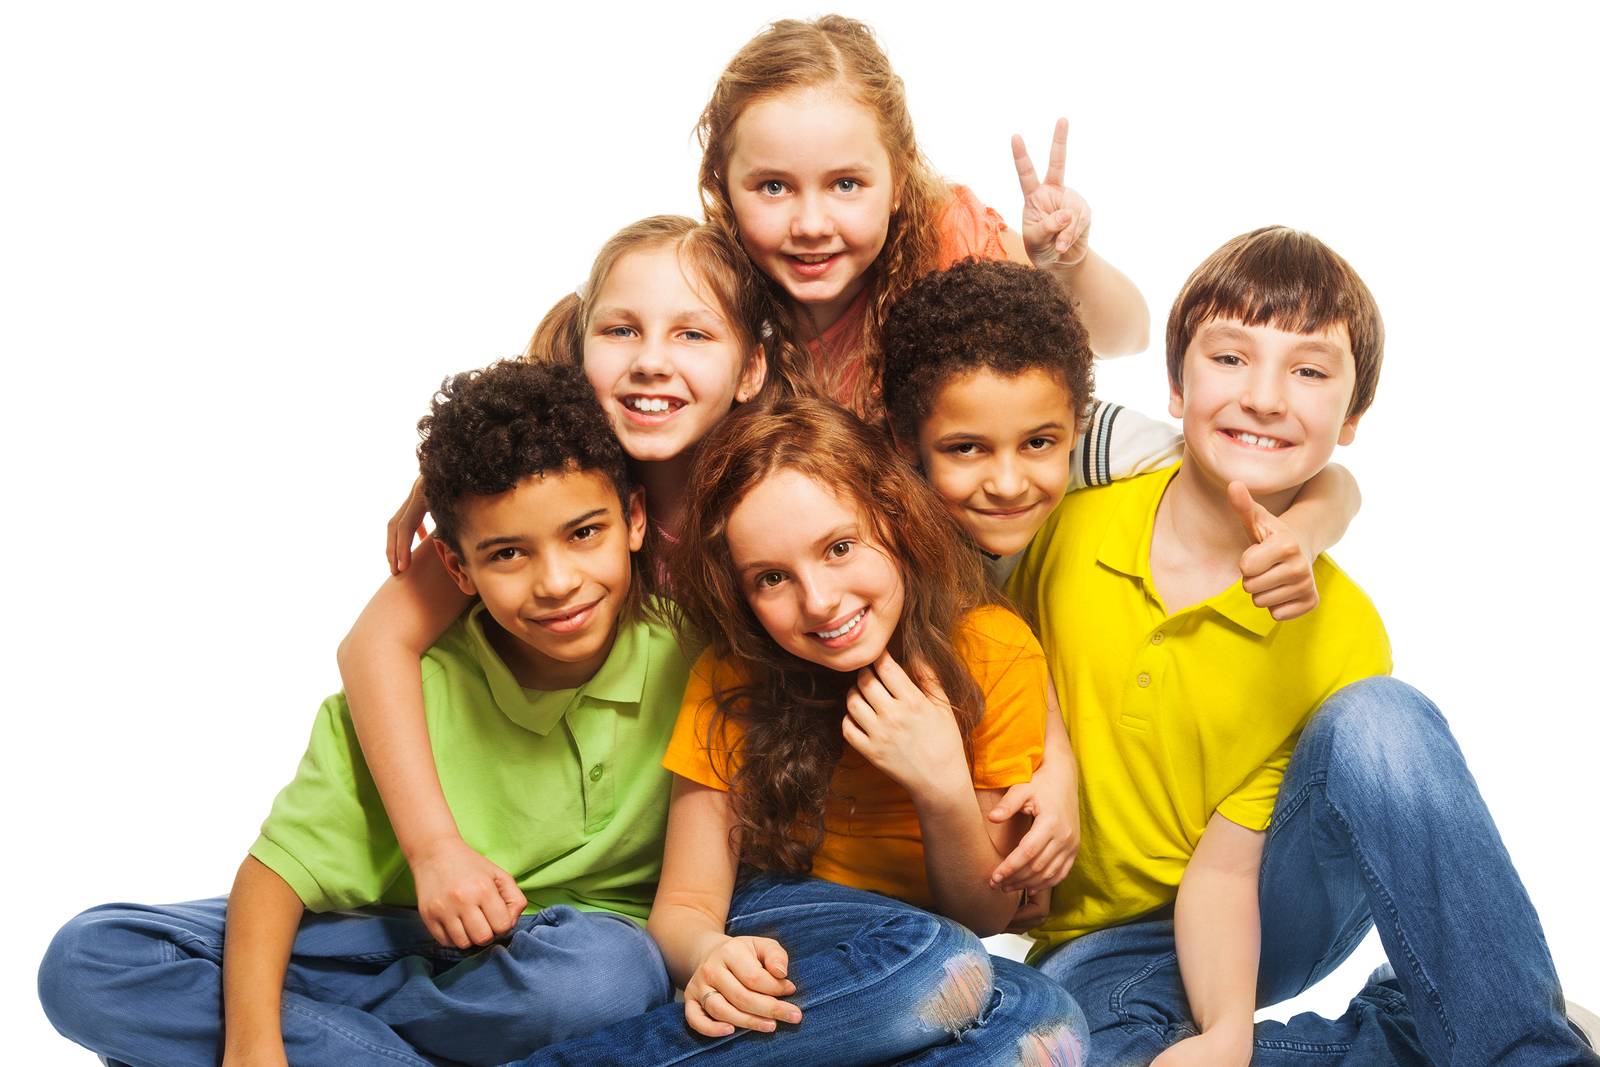 Three Key Homeopathic Remedies For Children - FREE webinar 5